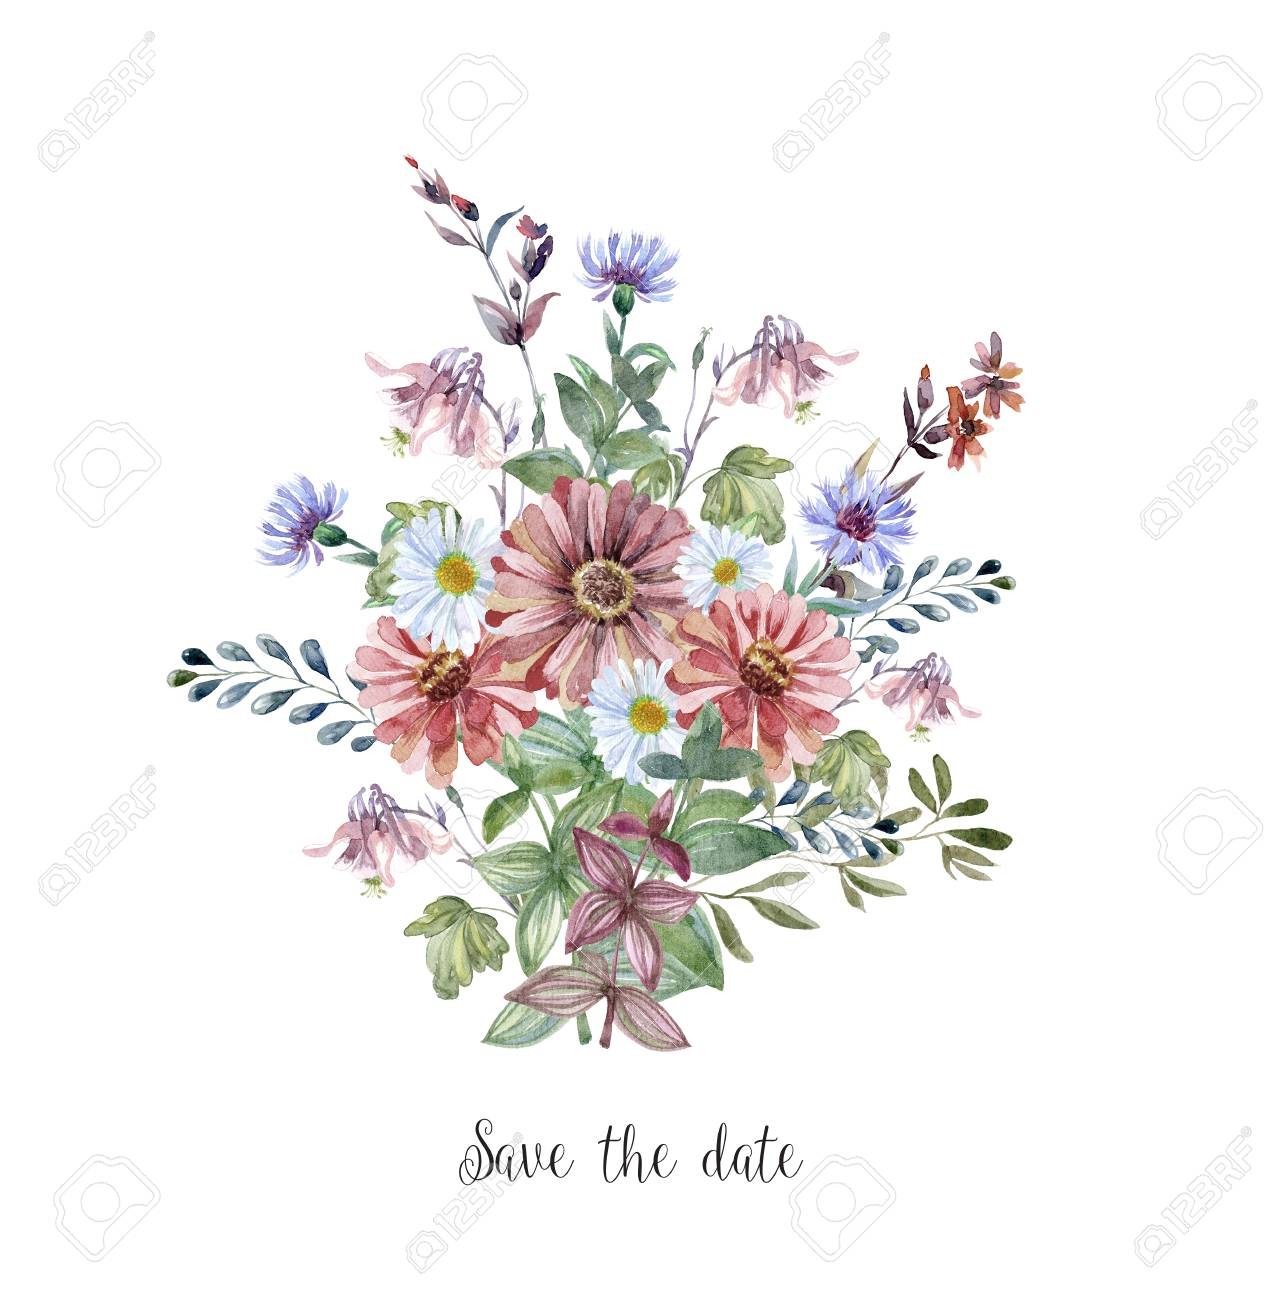 Watercolor Art With Fresh Flower Bouquet For Wedding Floral Stock Photo Picture And Royalty Free Image Image 111191531